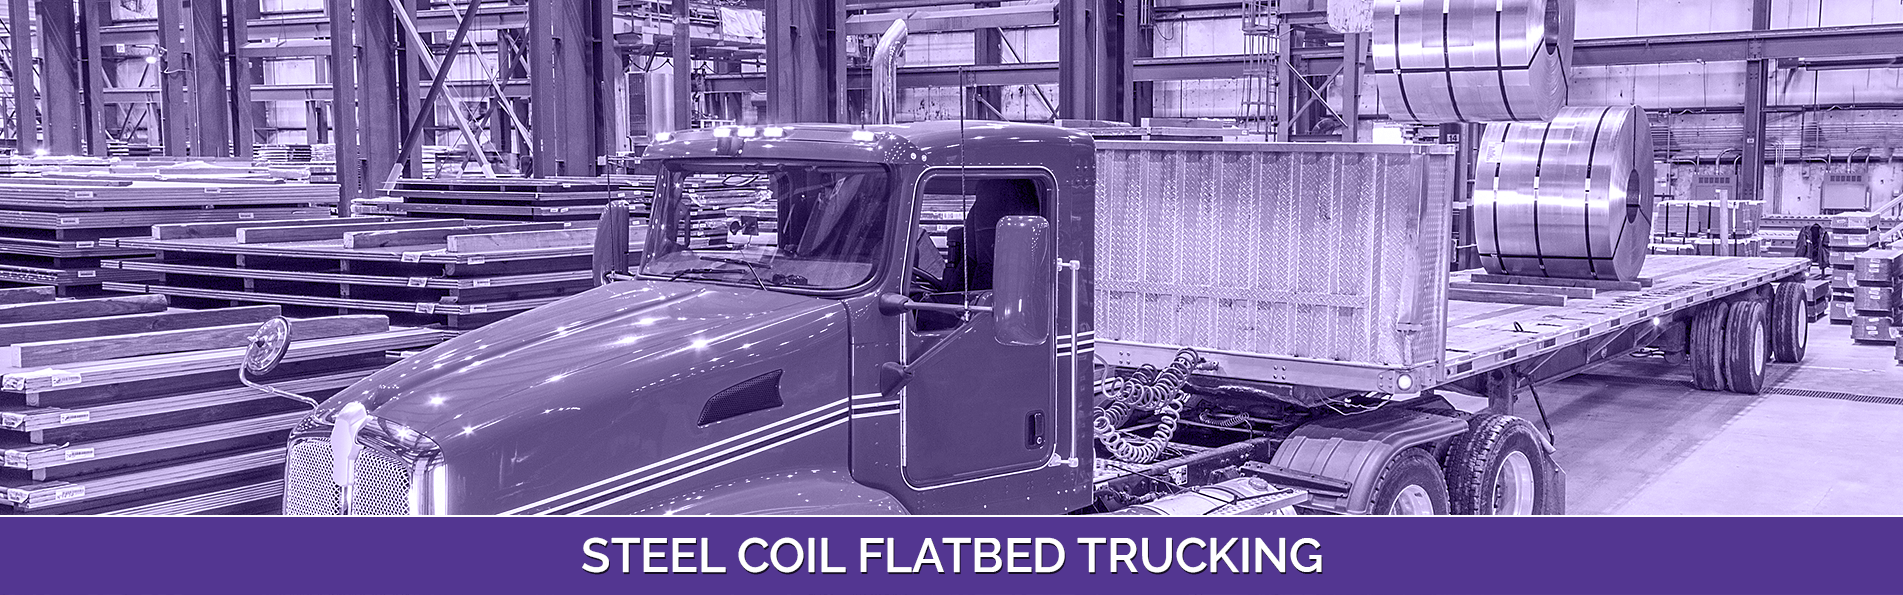 Steel Coil Flatbed Trucking and Transport